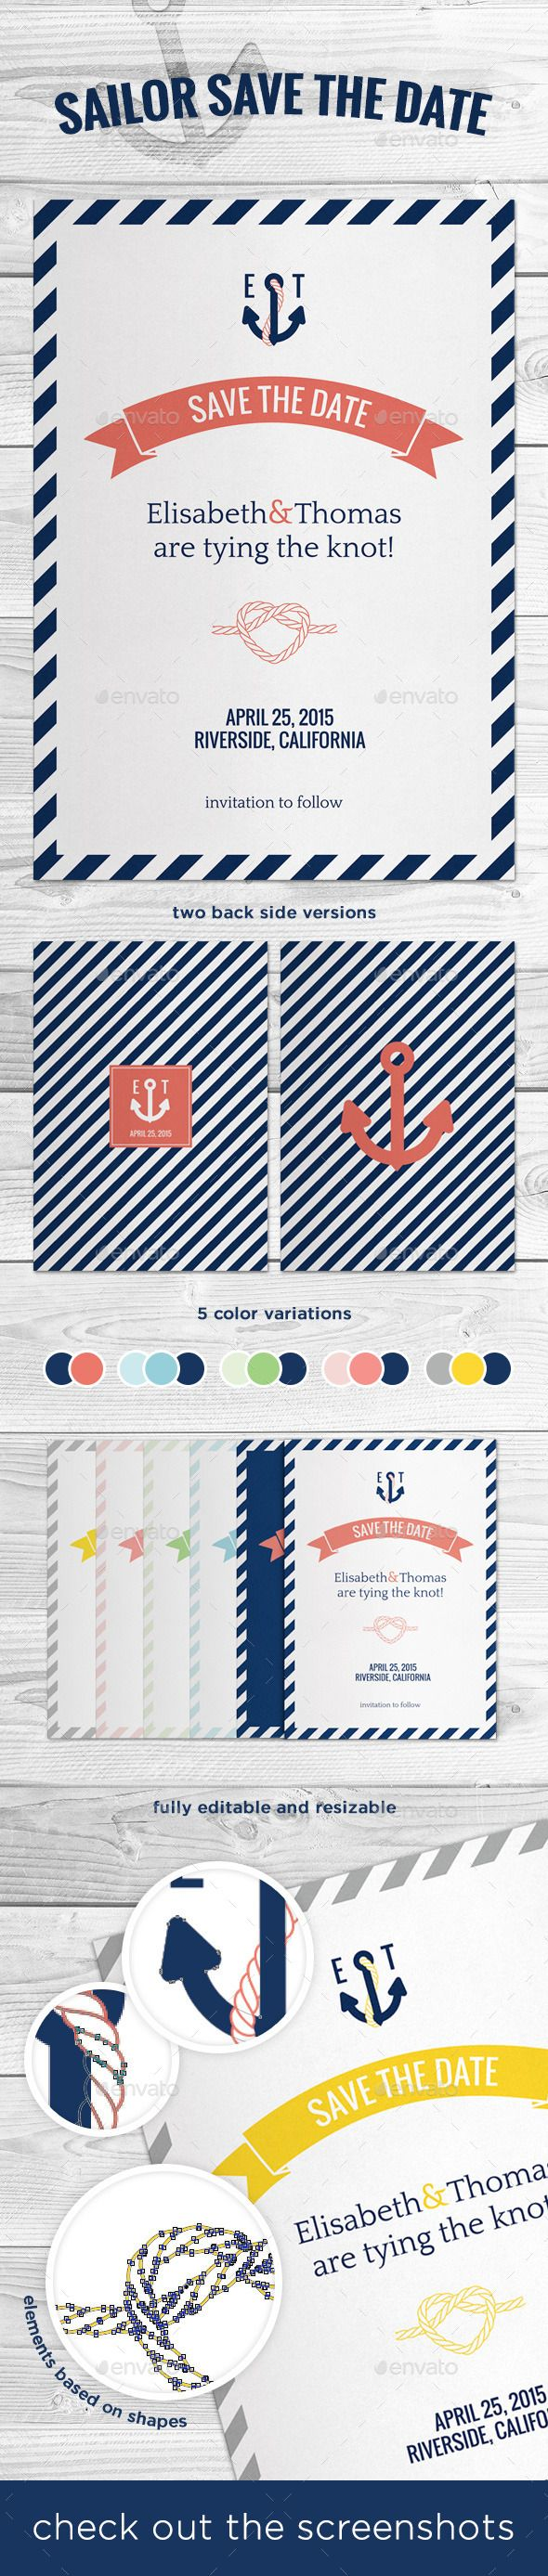 "Printable, fully customisable Sailor Save The Date.  Sailor / marine style Save The Date!  - 5 color variations - 2 back side versions - ready to print - CMYK - 5×7'' + 0.125"""" bleed - fully editable and resizable - elements based on shapes"